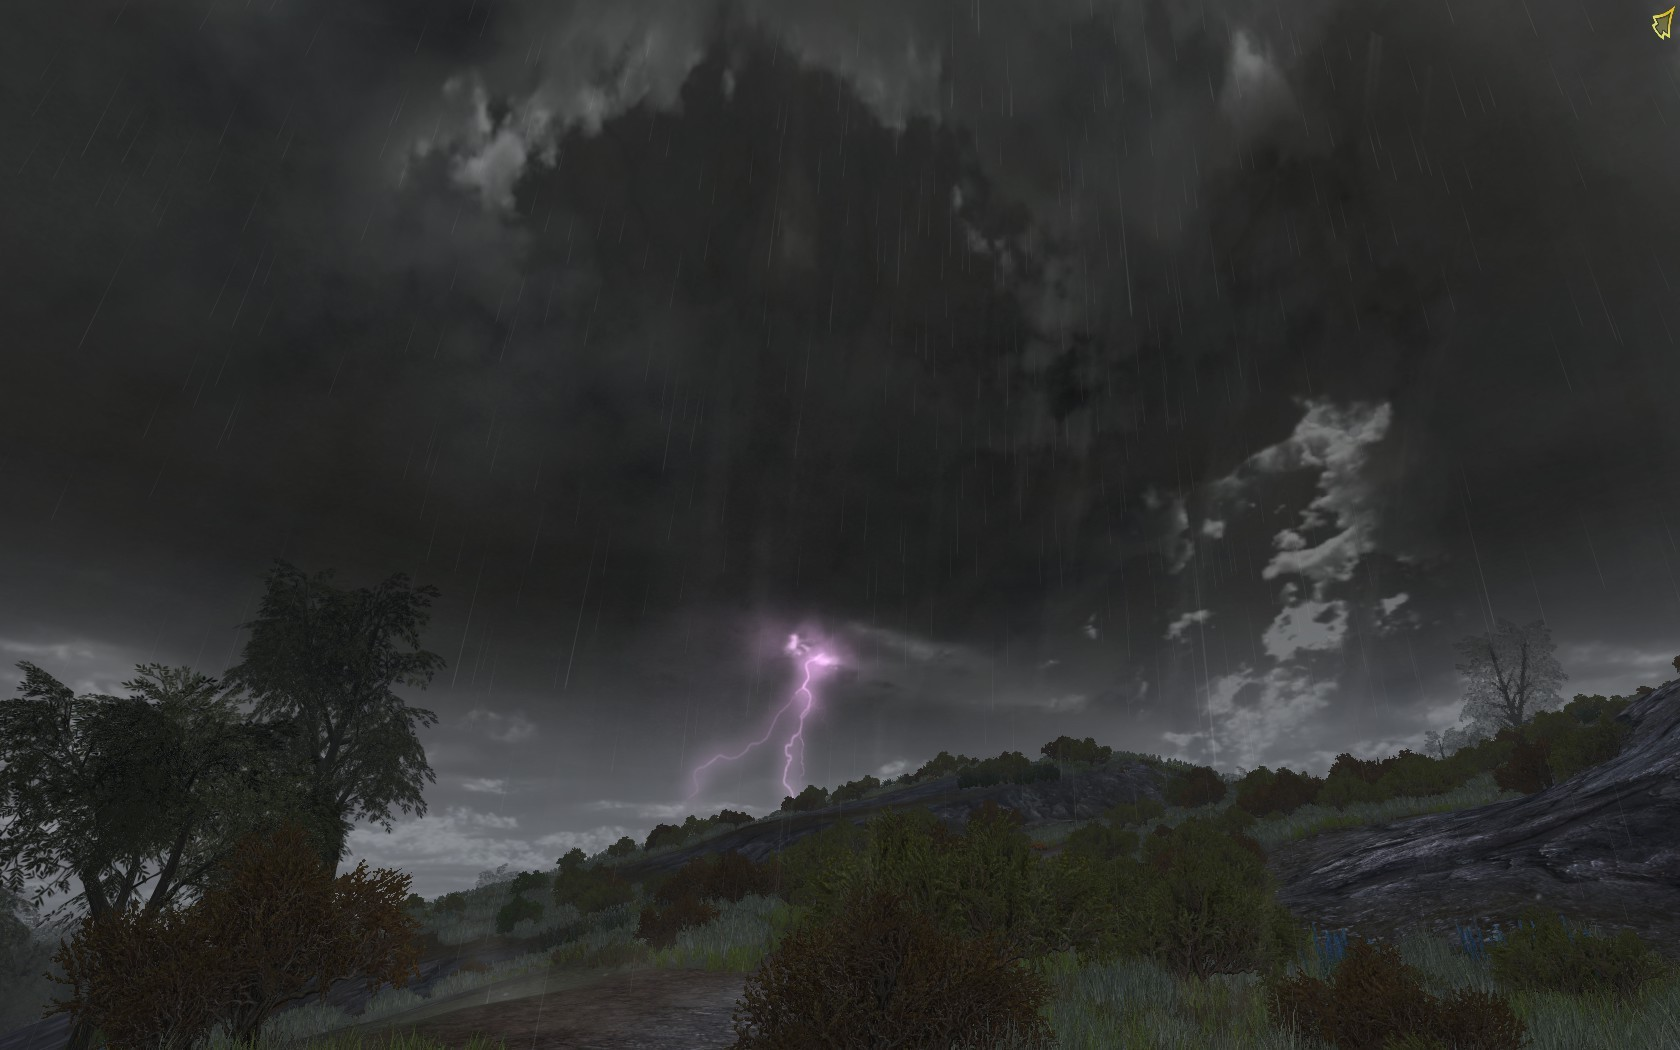 Lord of the Rings Online - Lightning storm on the plains of Rohan